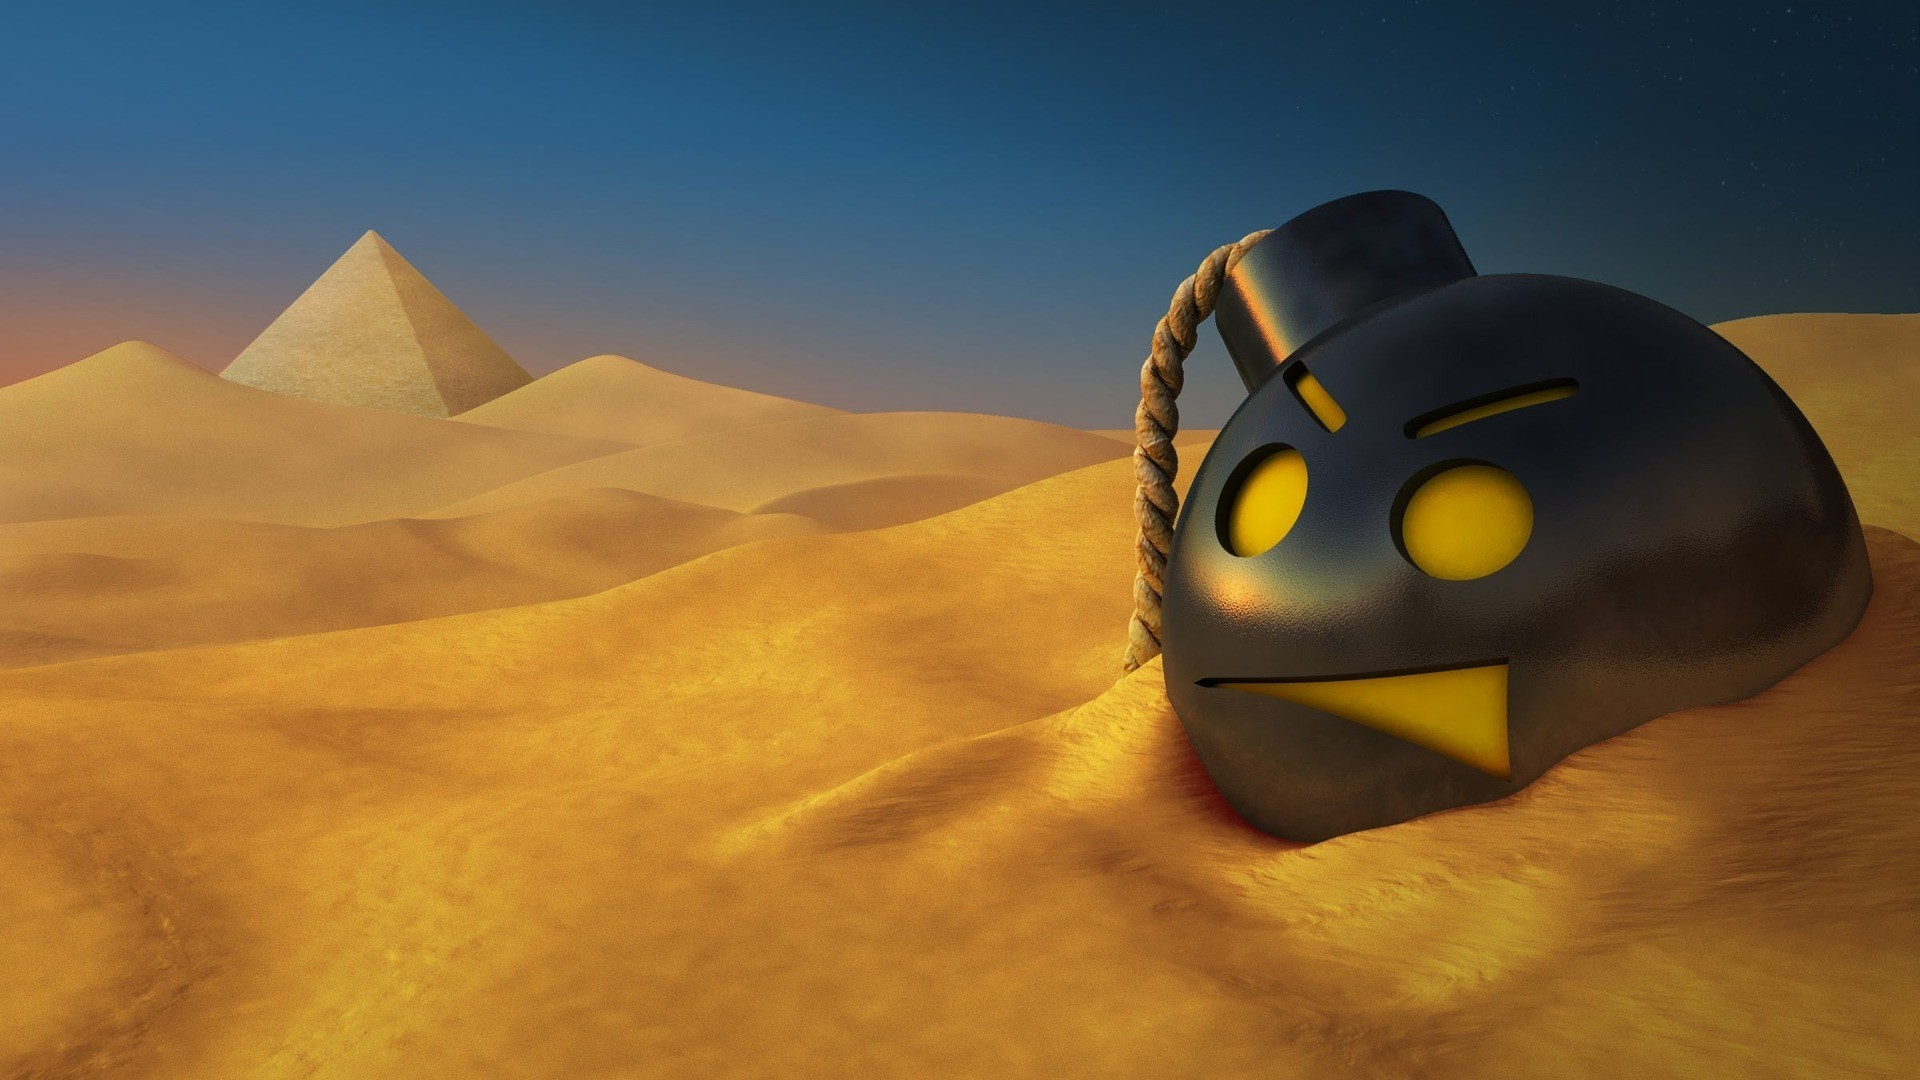 Round bomb in the desert wallpaper